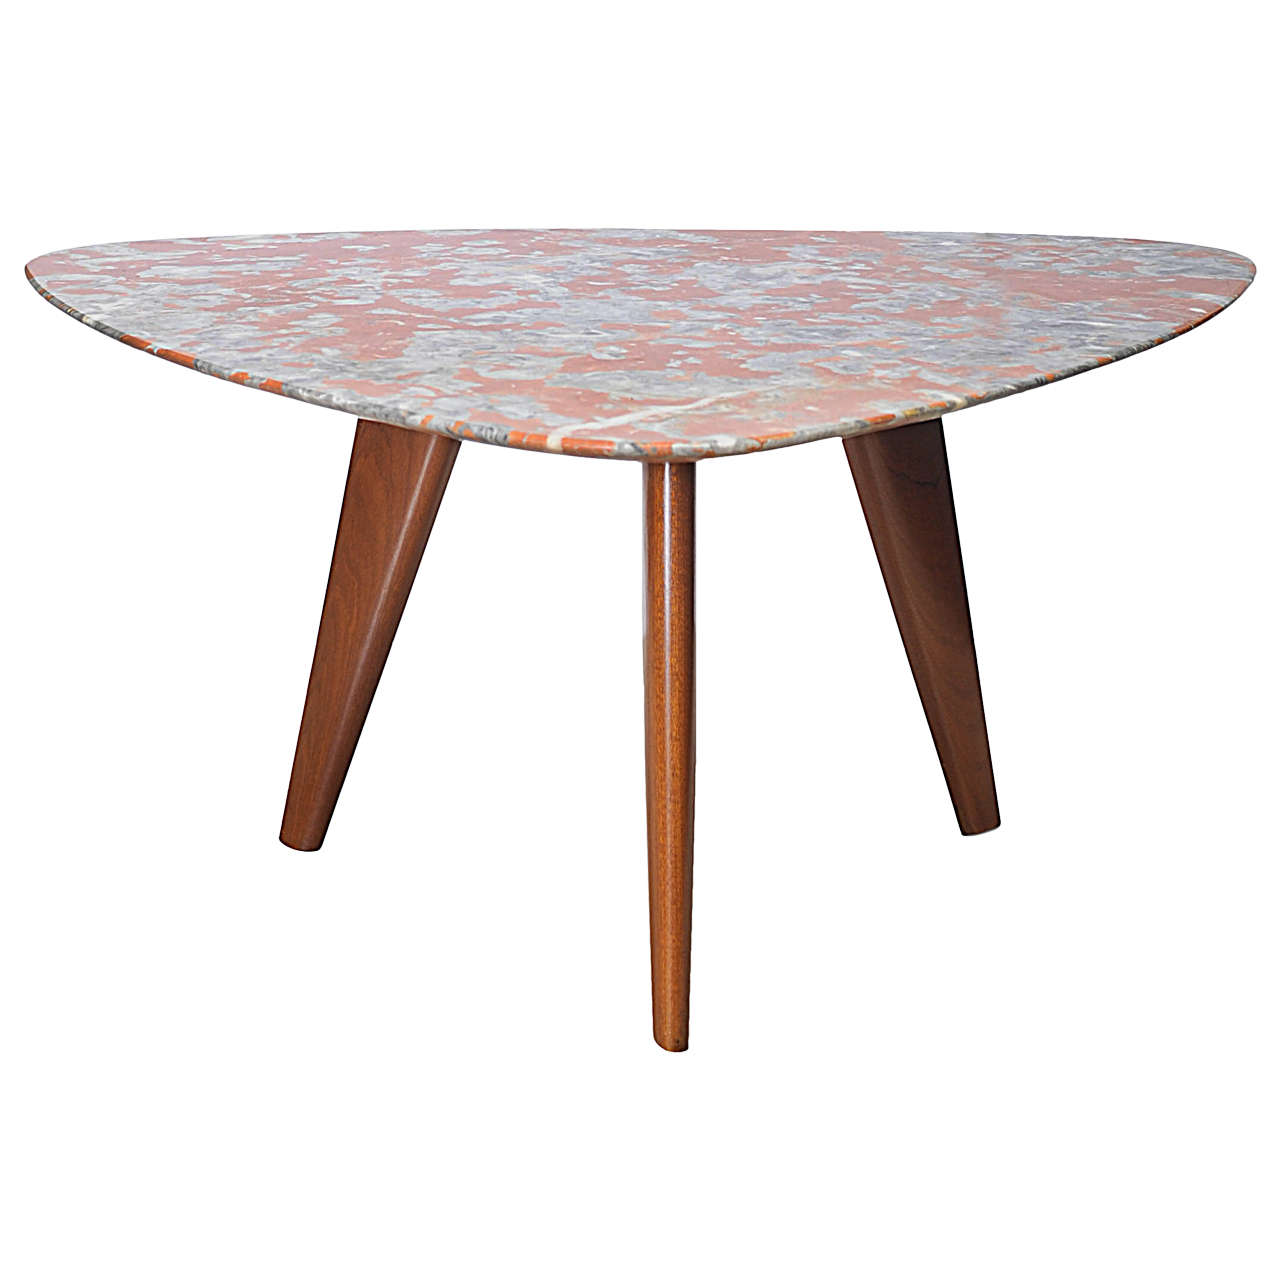 1950s Osvaldo Borsani Coffee Table For Sale